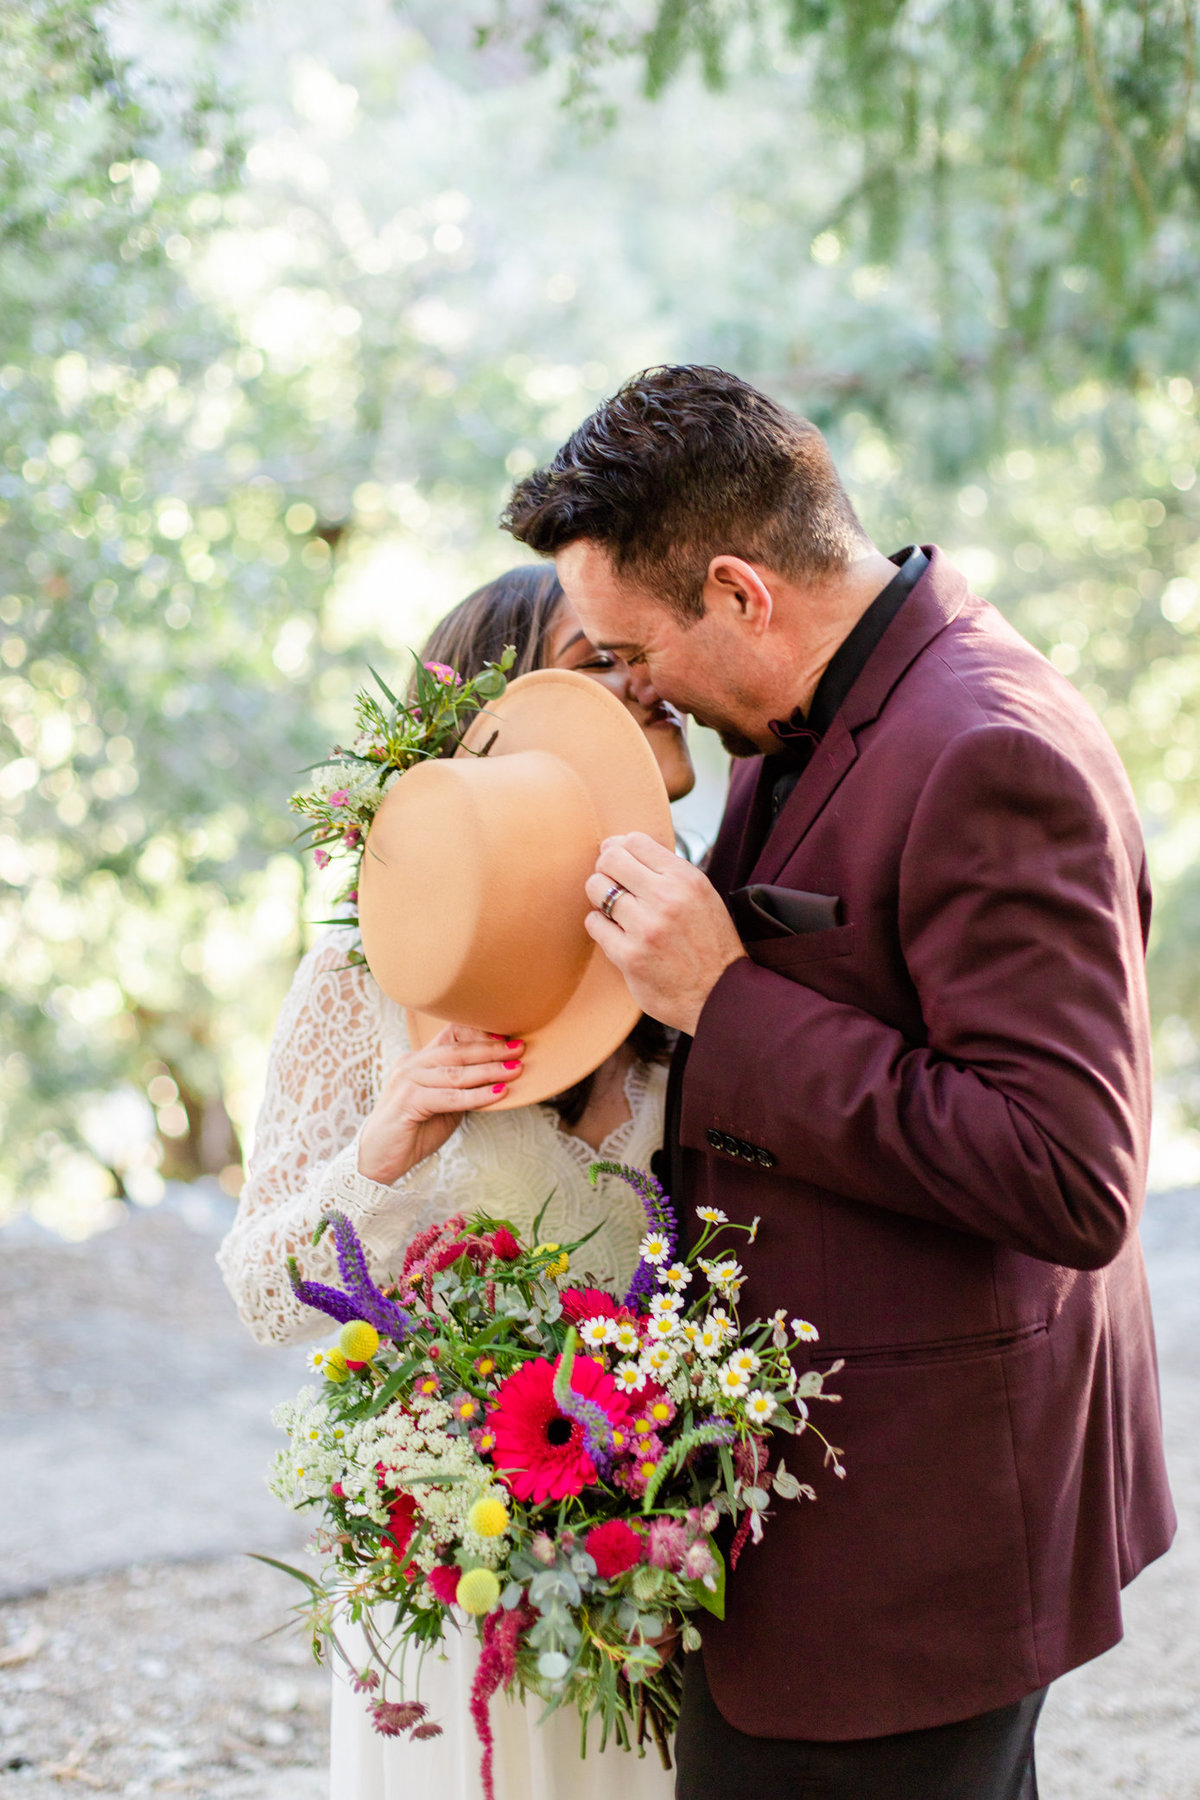 Mt. Baldy Elopement, Mt. Baldy Styled Shoot, Mt. Baldy Wedding, Forest Elopement, Forest Wedding, Boho Wedding, Boho Elopement, Mt. Baldy Boho, Forest Boho, Woodland Boho-30